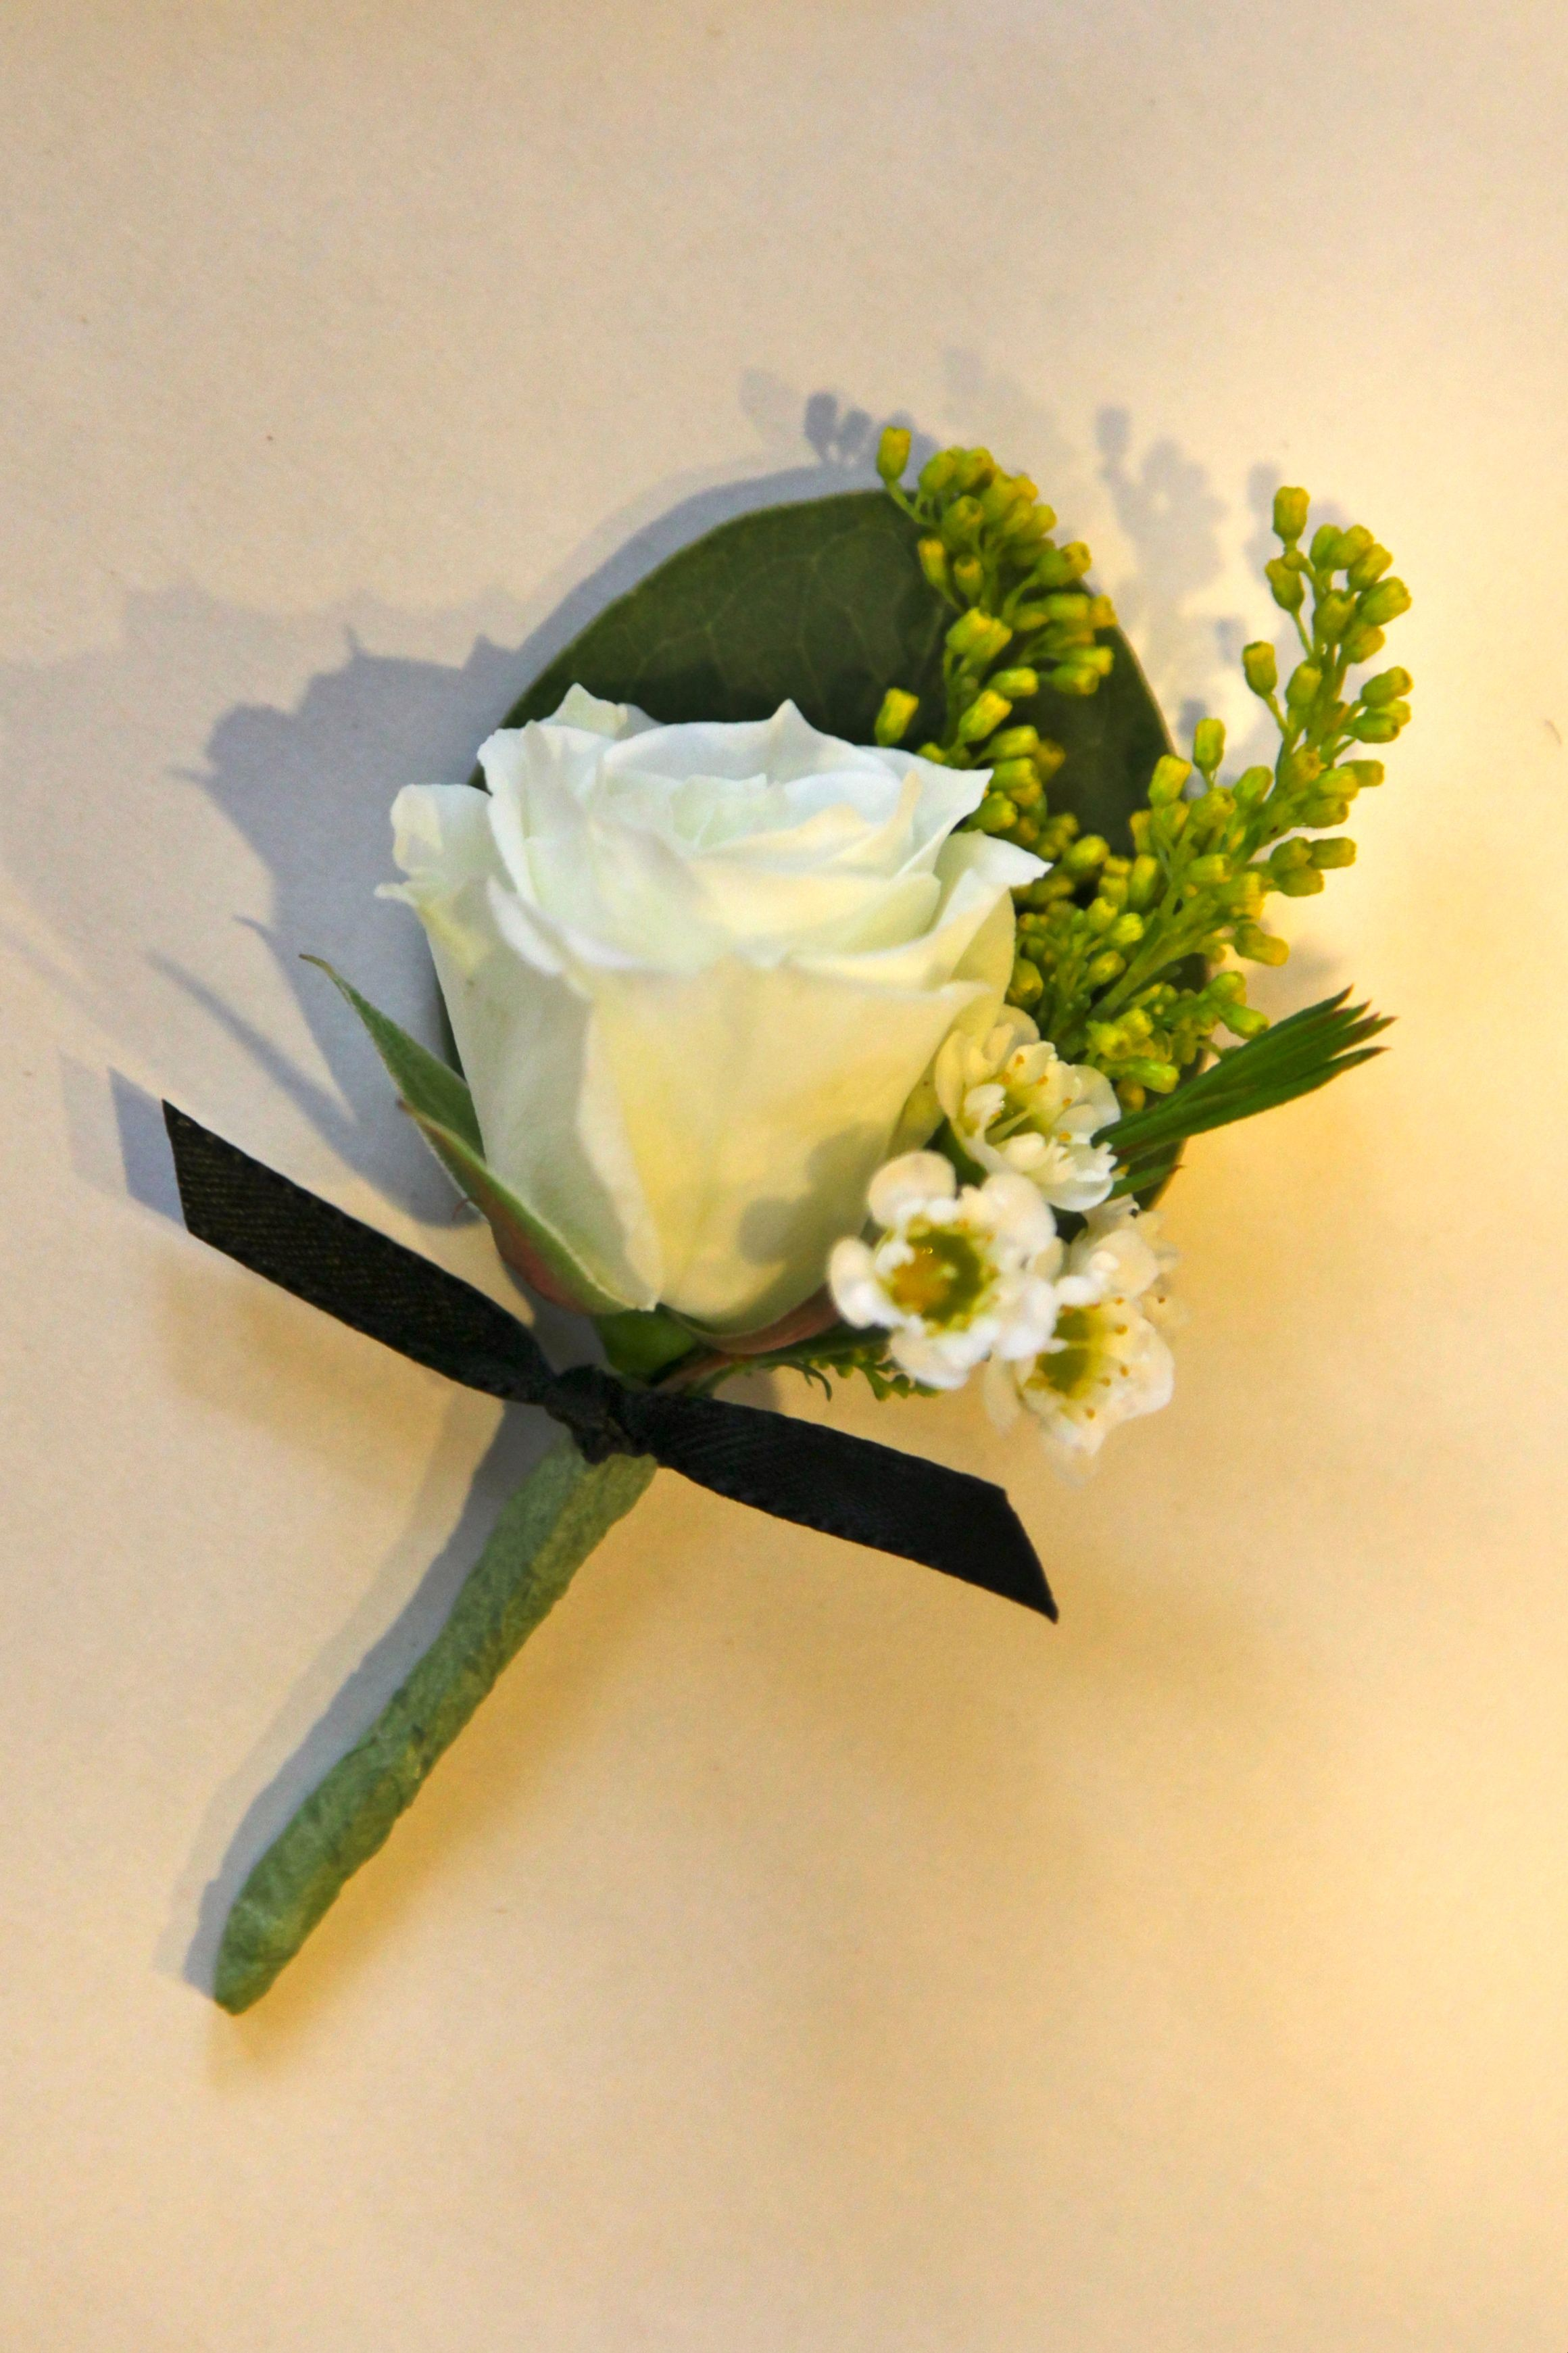 White Spraying Roses Corsages | Boutonniere with white ...White Spray Rose Boutonniere